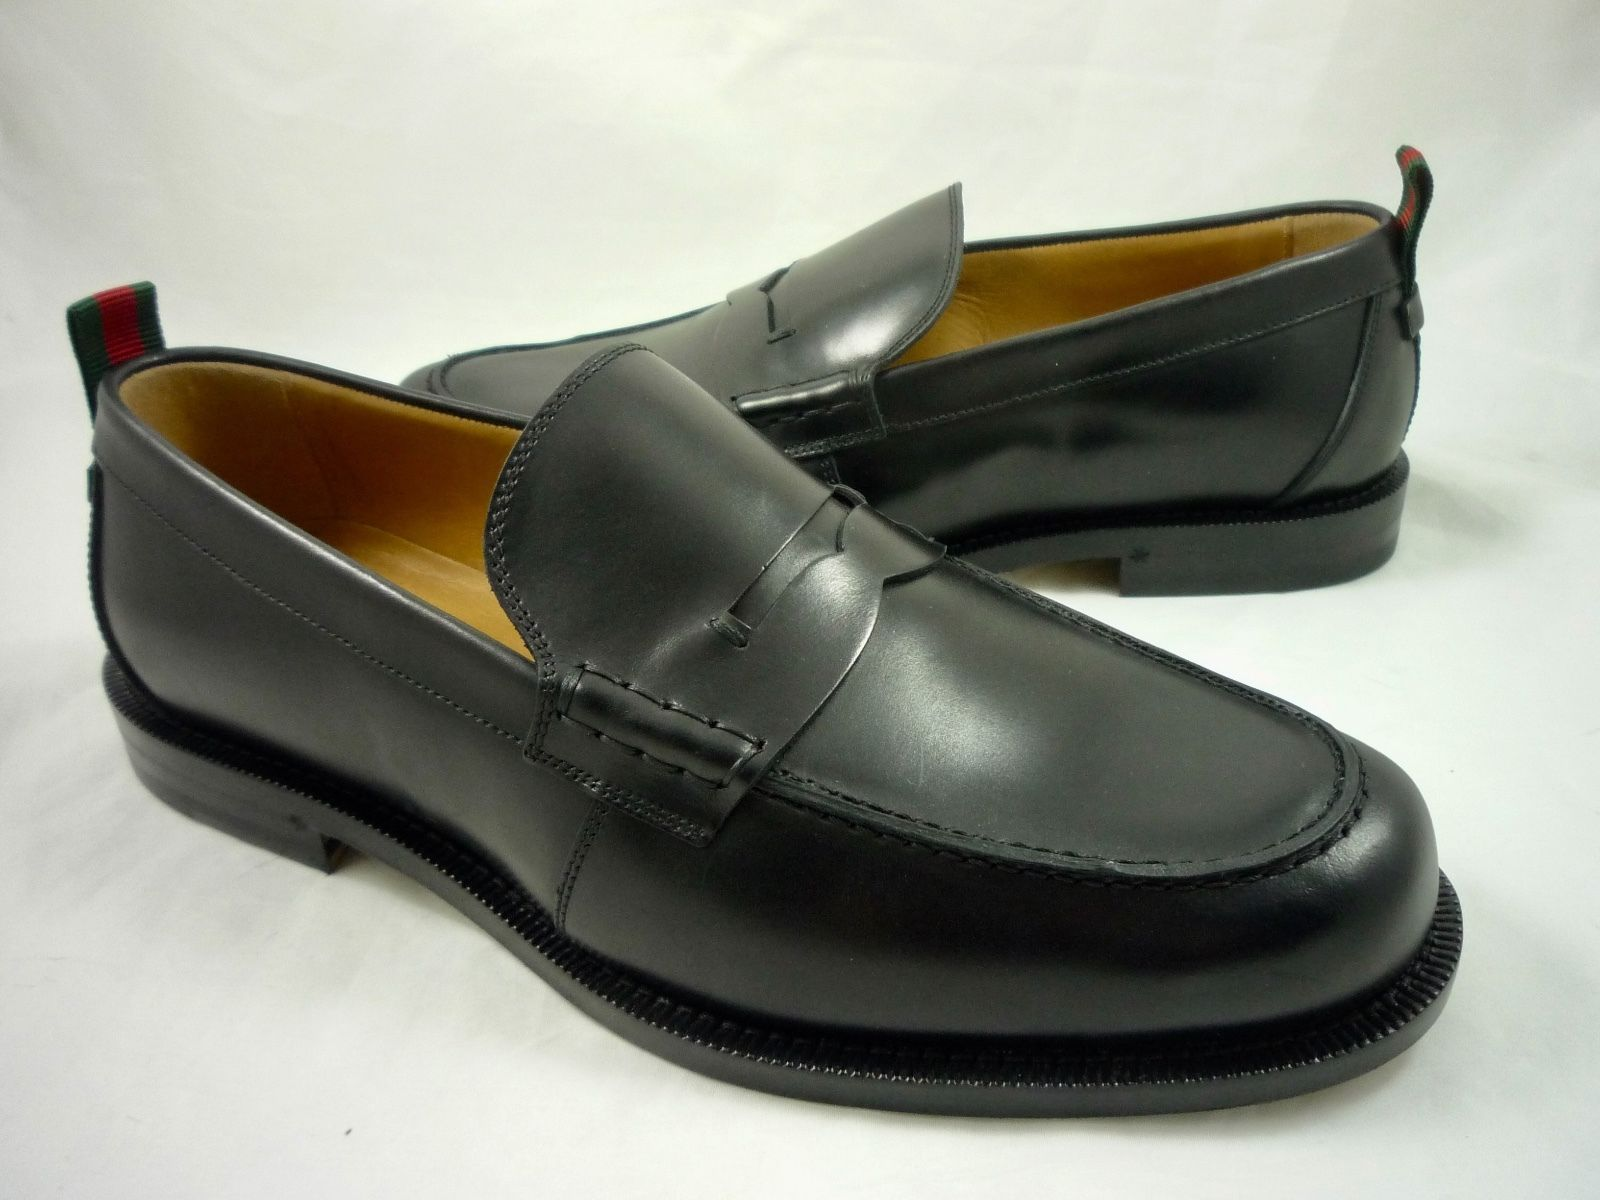 f6b40b8a413 Gucci Men s Size 9 Tobias Leather Classic Penny Loafers Shoes Black Reg   690 NEW